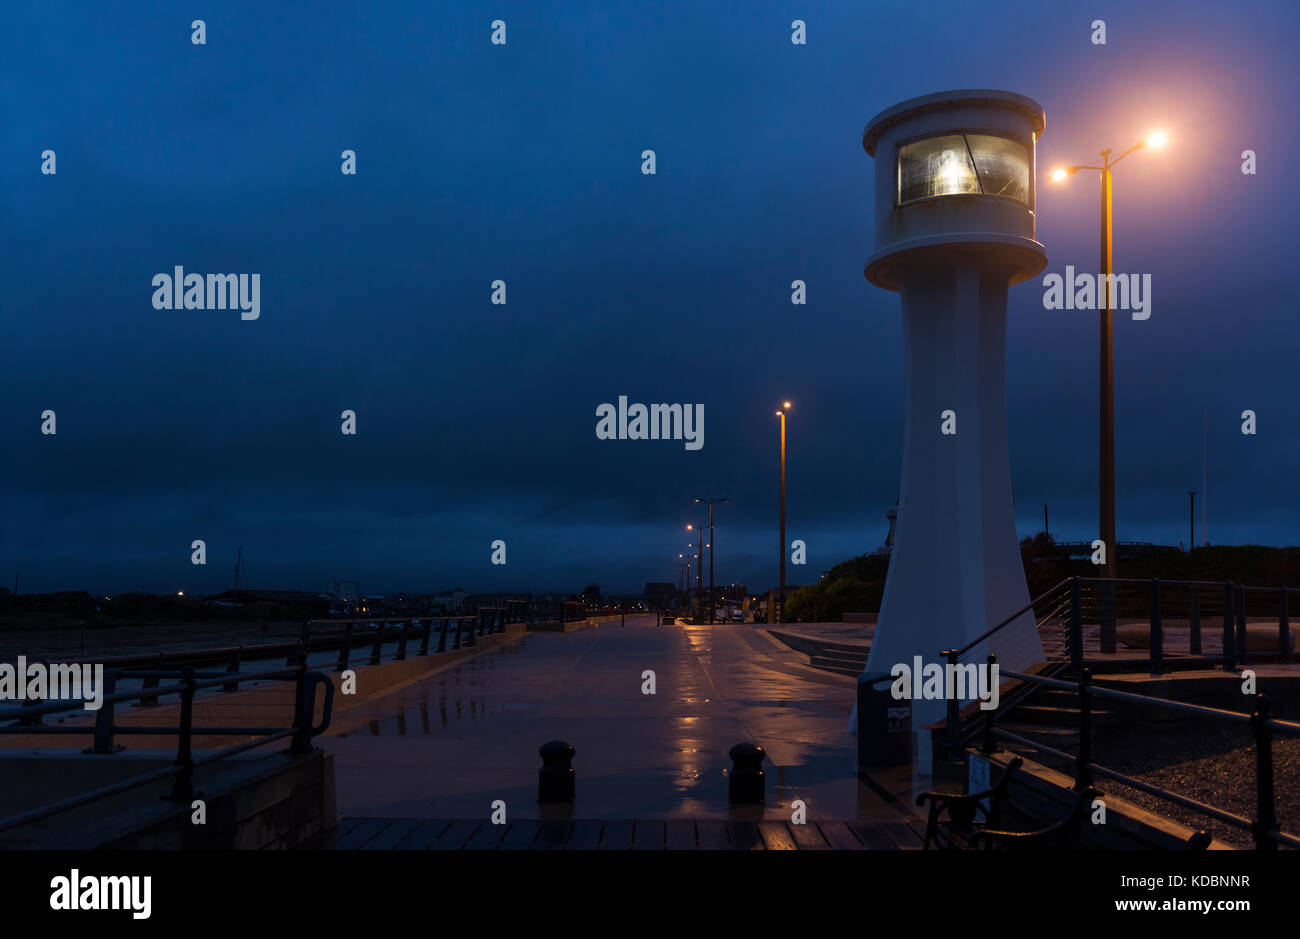 Insure lighthouse at night in Littlehampton, West Sussex, England, UK. - Stock Image